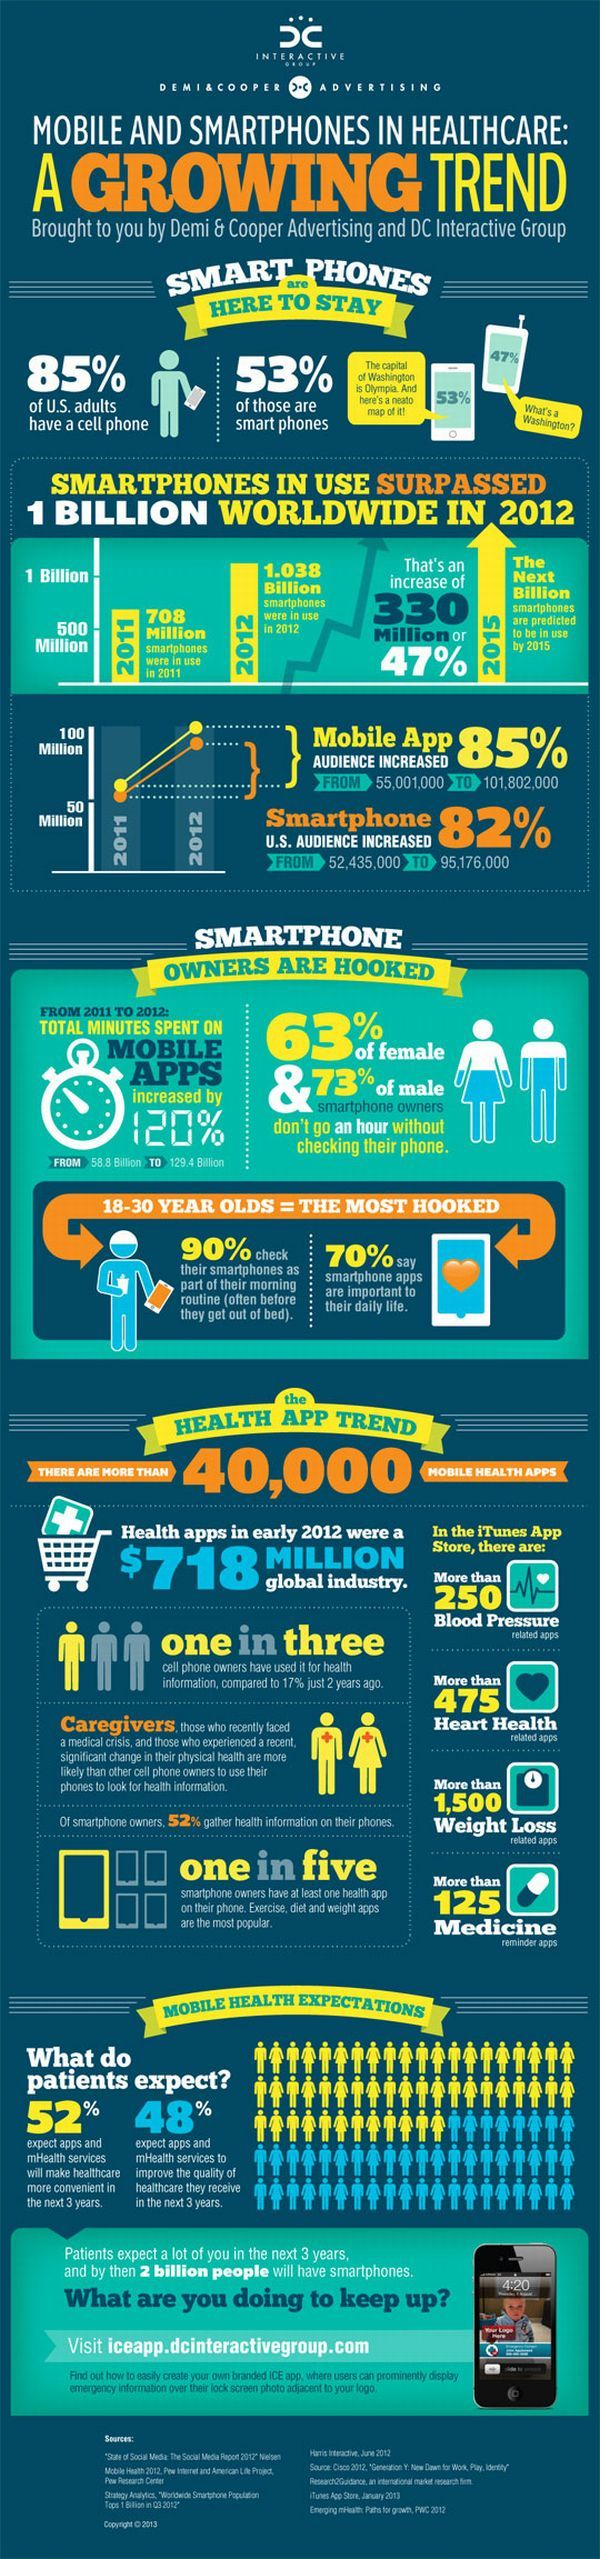 "Awesome Infographic - a great opportunity for low literacy? ""Use of health apps to skyrocket"""